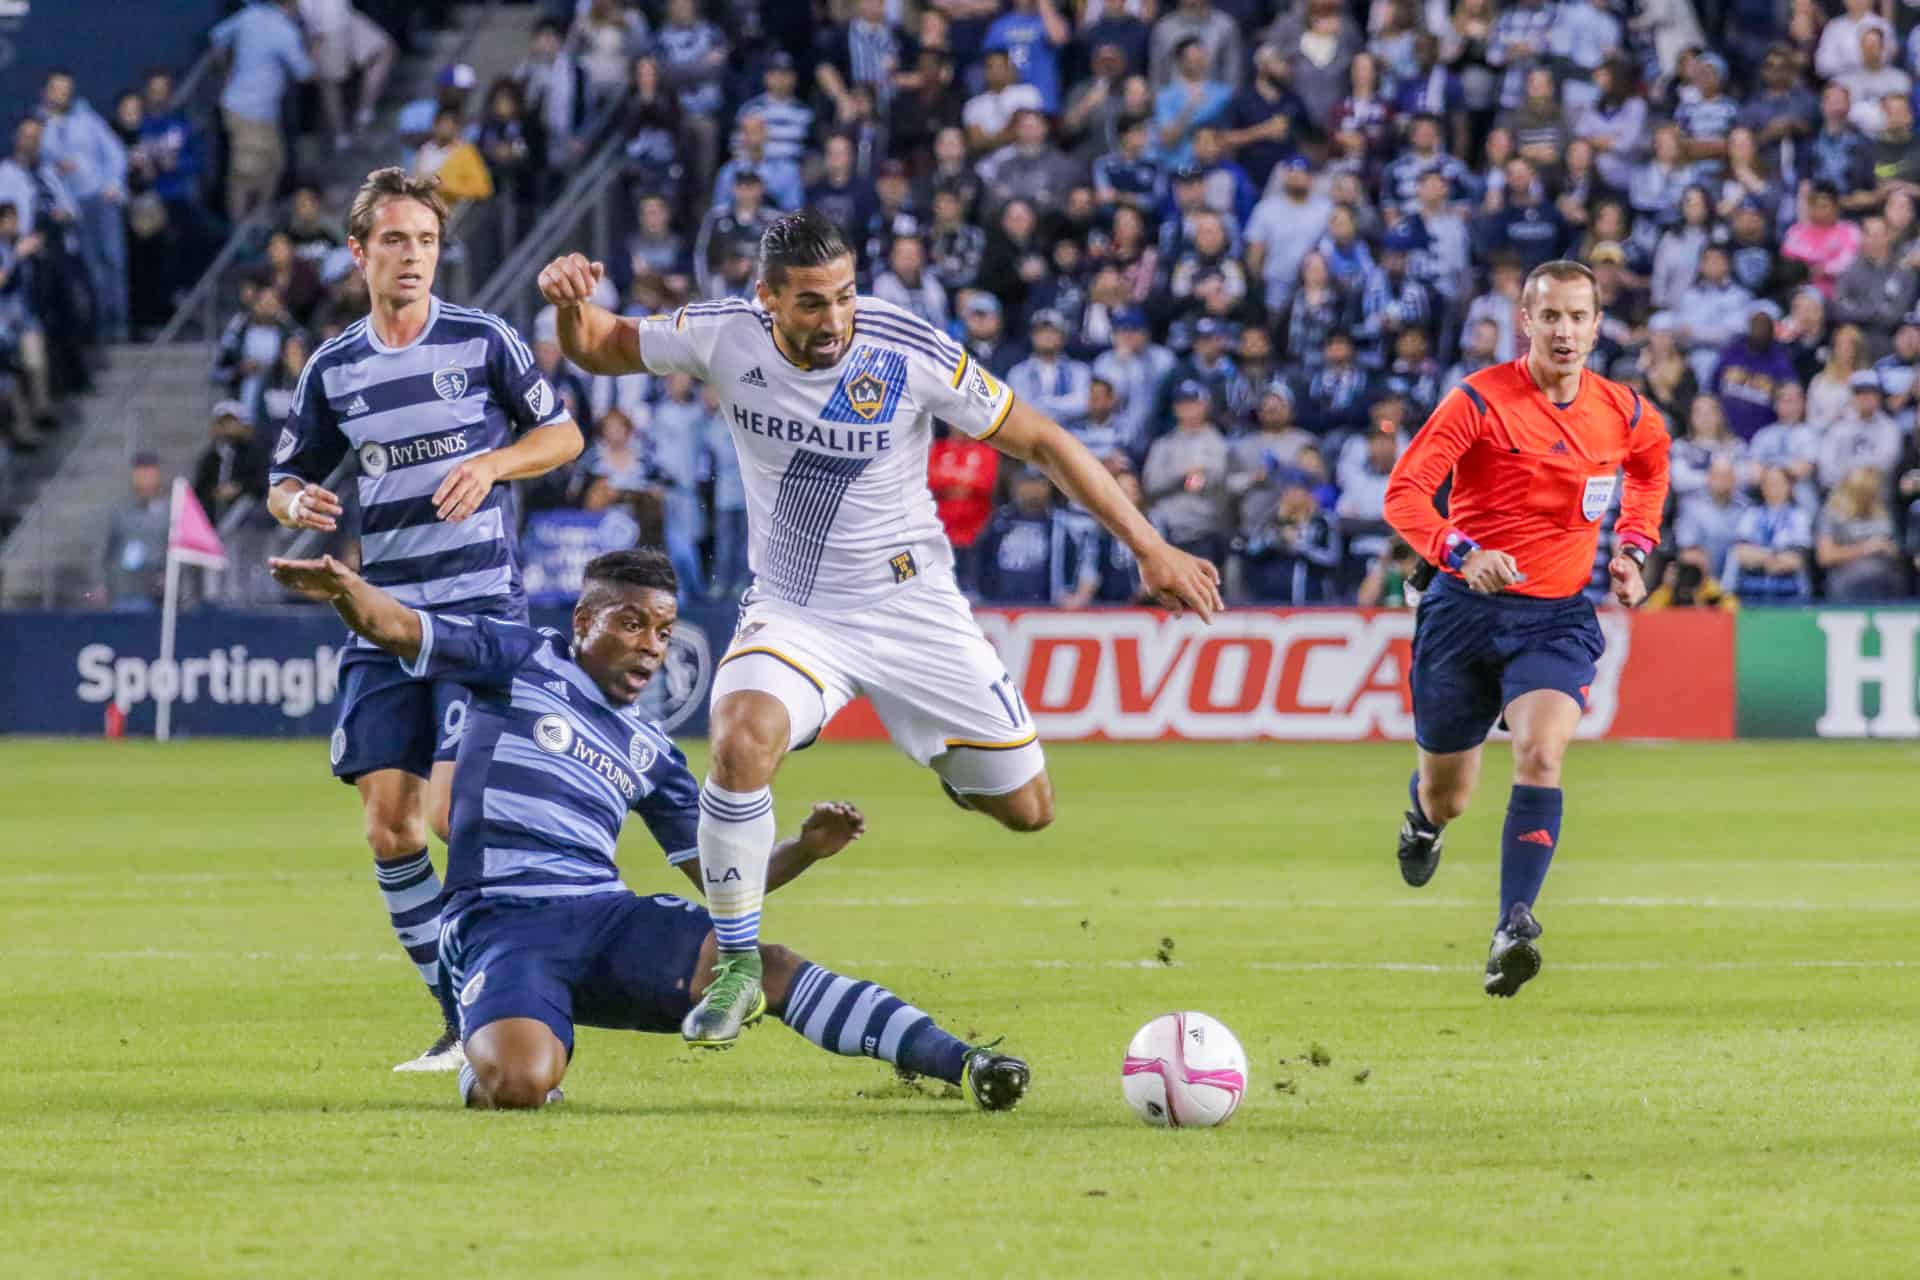 Sporting Kansas City is an American professional soccer club based in Kansas City Missouri playing its home games in Kansas City Kansas The club competes as a